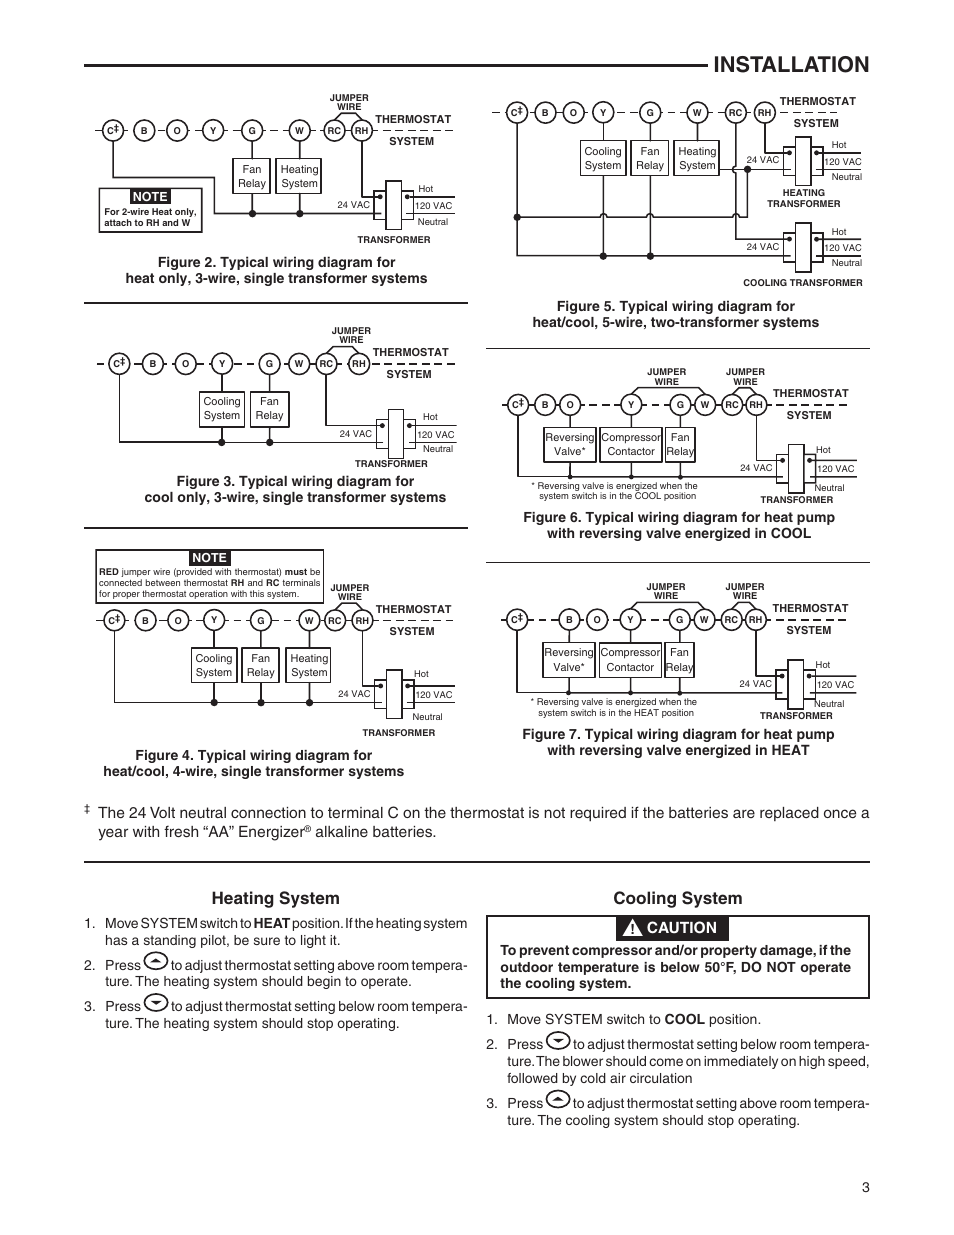 white-rodgers-1f87-361-page3 White Rodgers Wiring Diagram Thermostat on honeywell thermostat diagram, white rodgers furnace thermostat diagram, white rodgers air conditioner, old white rodgers thermostat diagram, comfort air wiring diagram, white rodgers thermostats replacement, white rodgers zone valve, gas valve wiring diagram, rthl3550 wiring diagram, white rodgers thermostats for homes, heat and air thermostat diagram, coleman heat pump wiring diagram, white rodgers type 91 relay, electric light wiring diagram, rth2300 wiring diagram, white rodgers fan relay diagram, typical heat pump wiring diagram, heat pump thermostat diagram, white rodgers gas valves parts, white rodgers gas valve wiring,